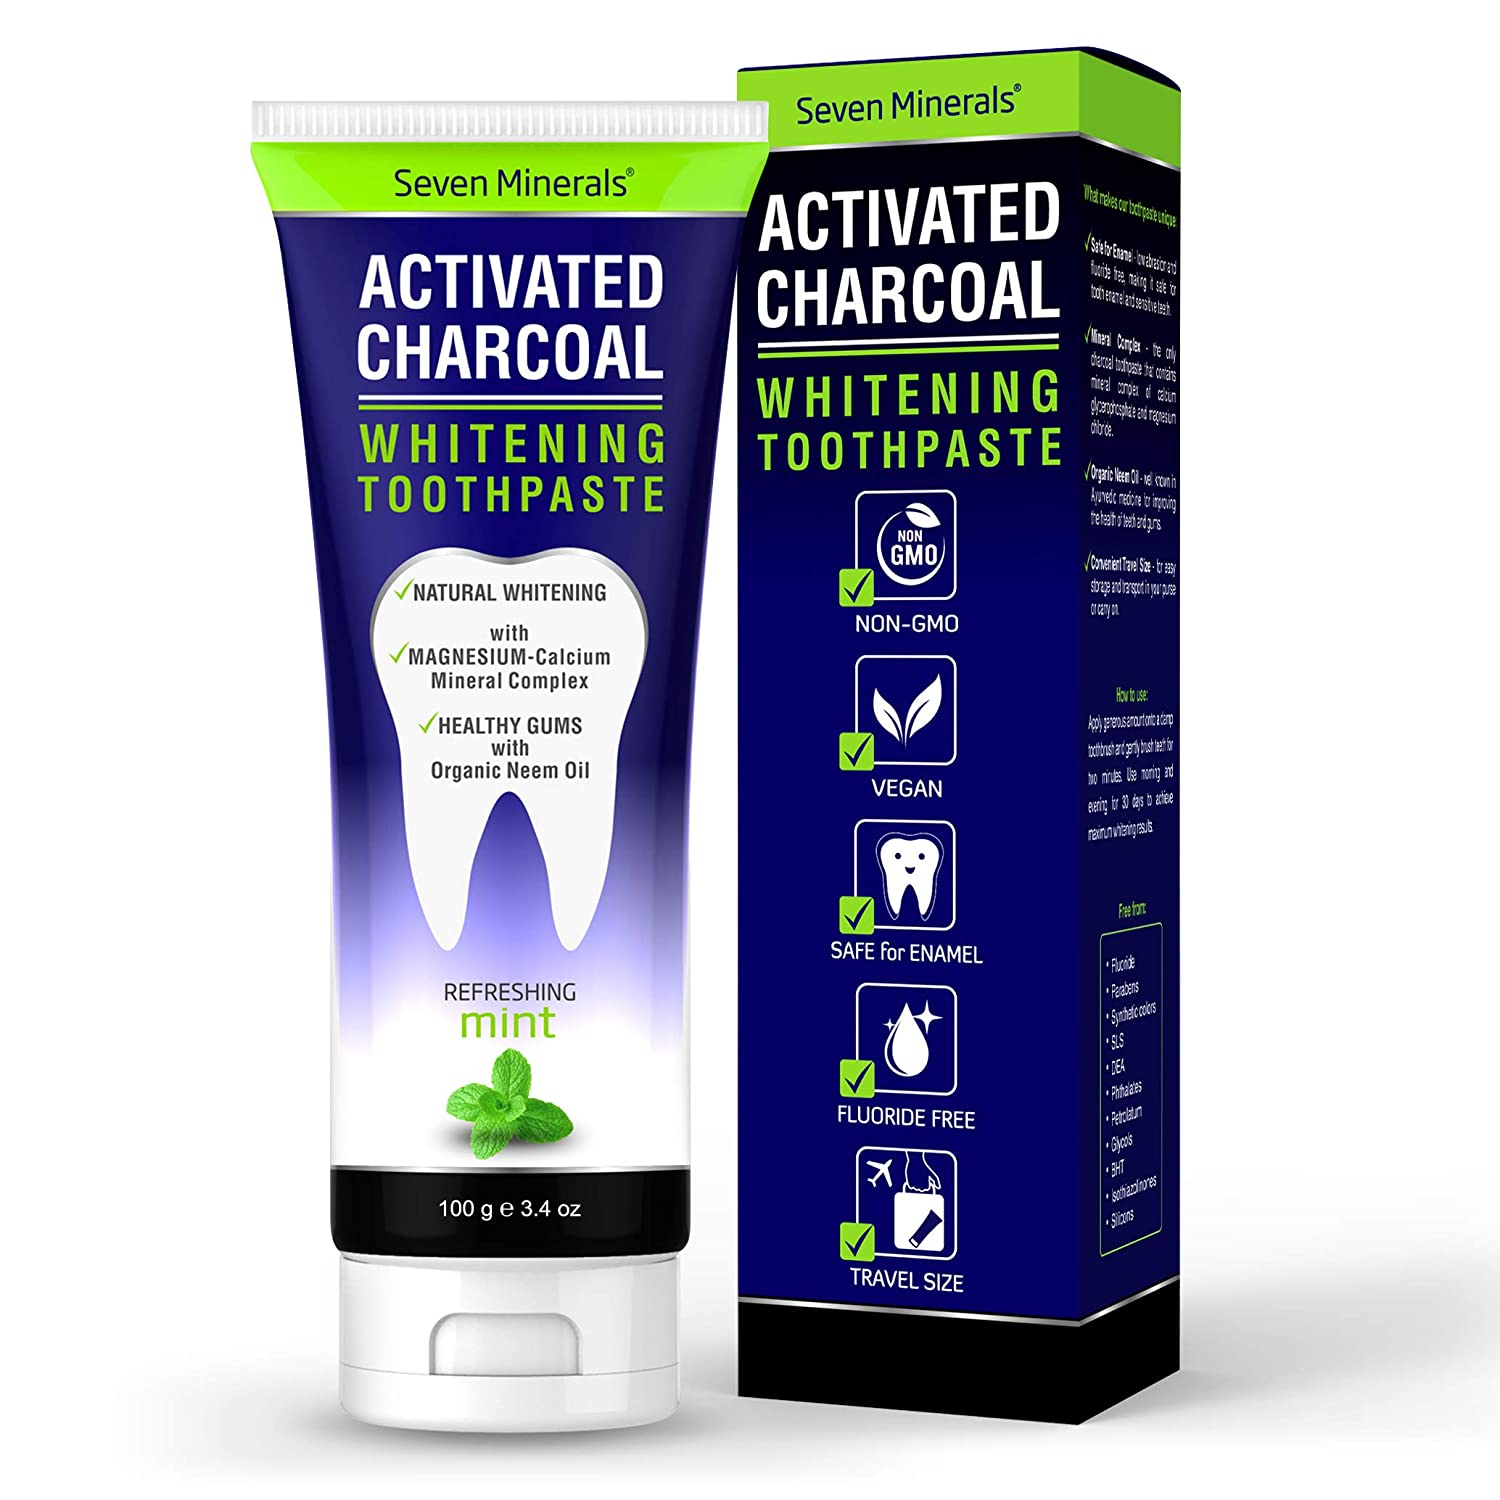 Seven Minerals #1 Remineralizing Activated Charcoal Toothpaste